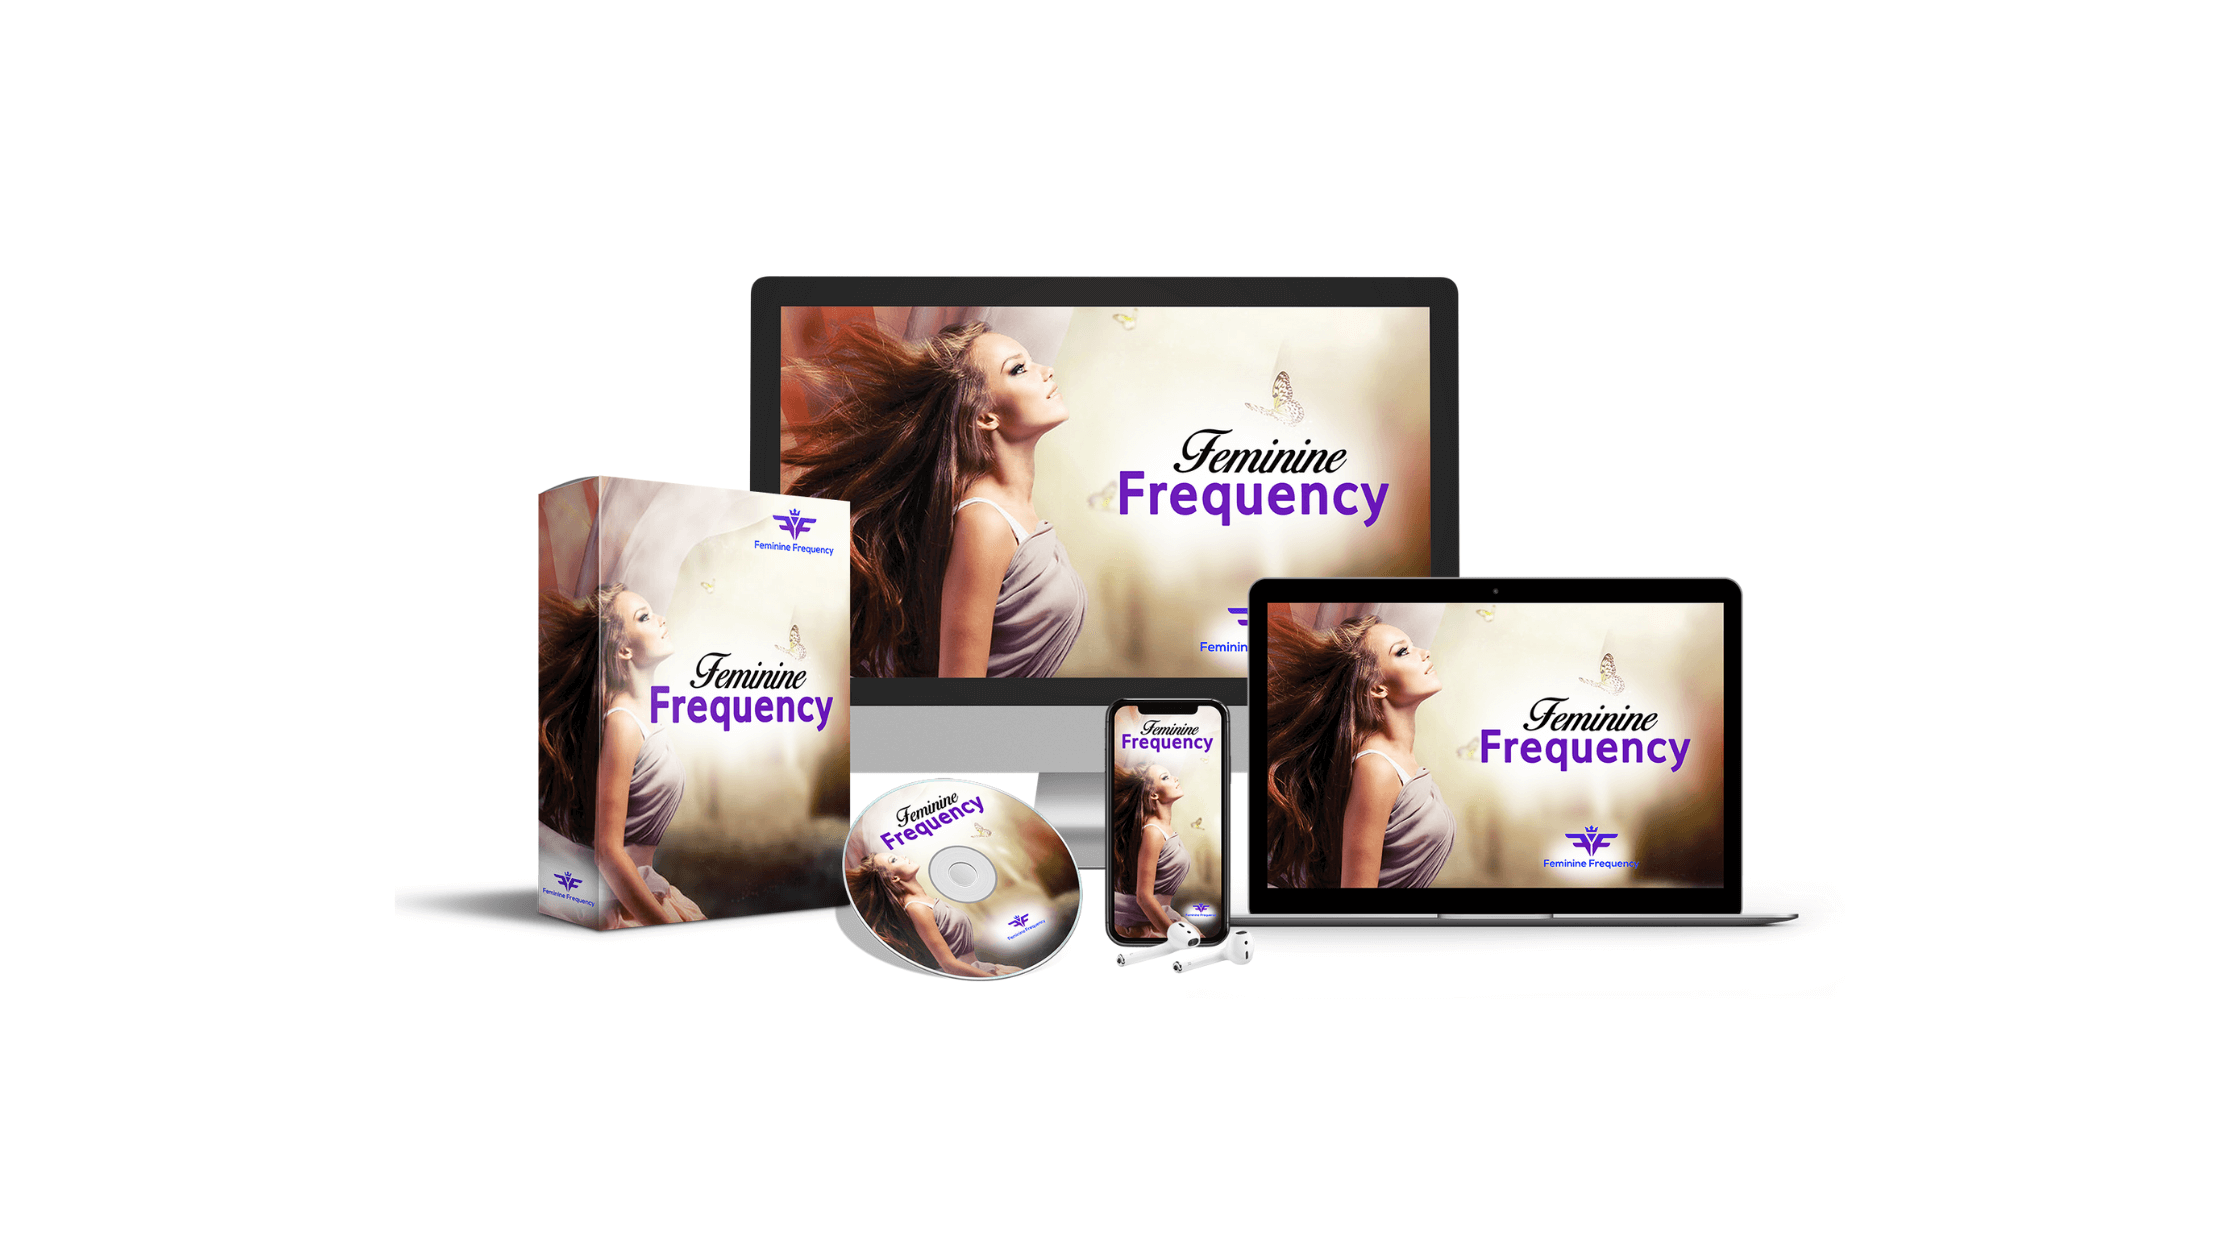 Feminine Frequency Includes